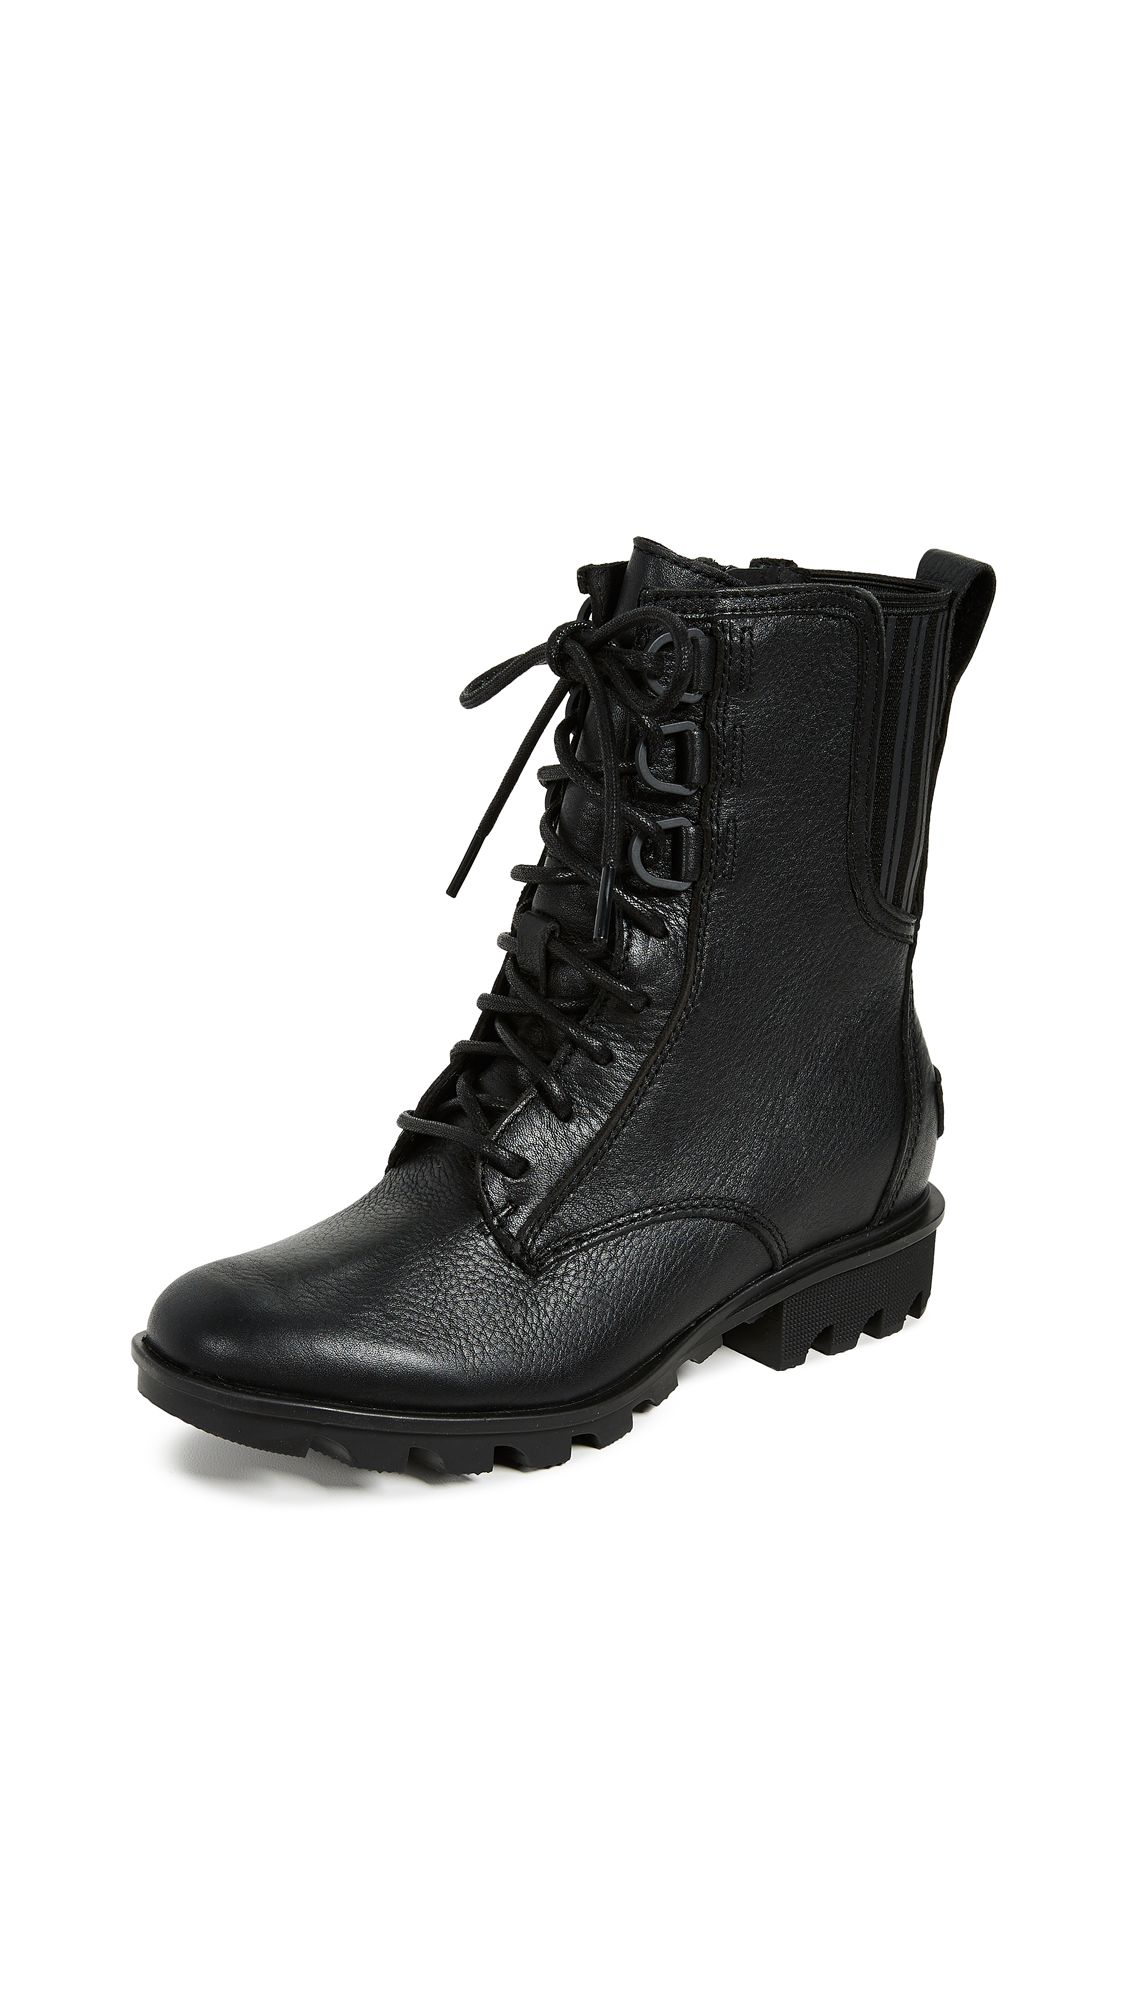 Sorel Phoenix Lace Boots - Black